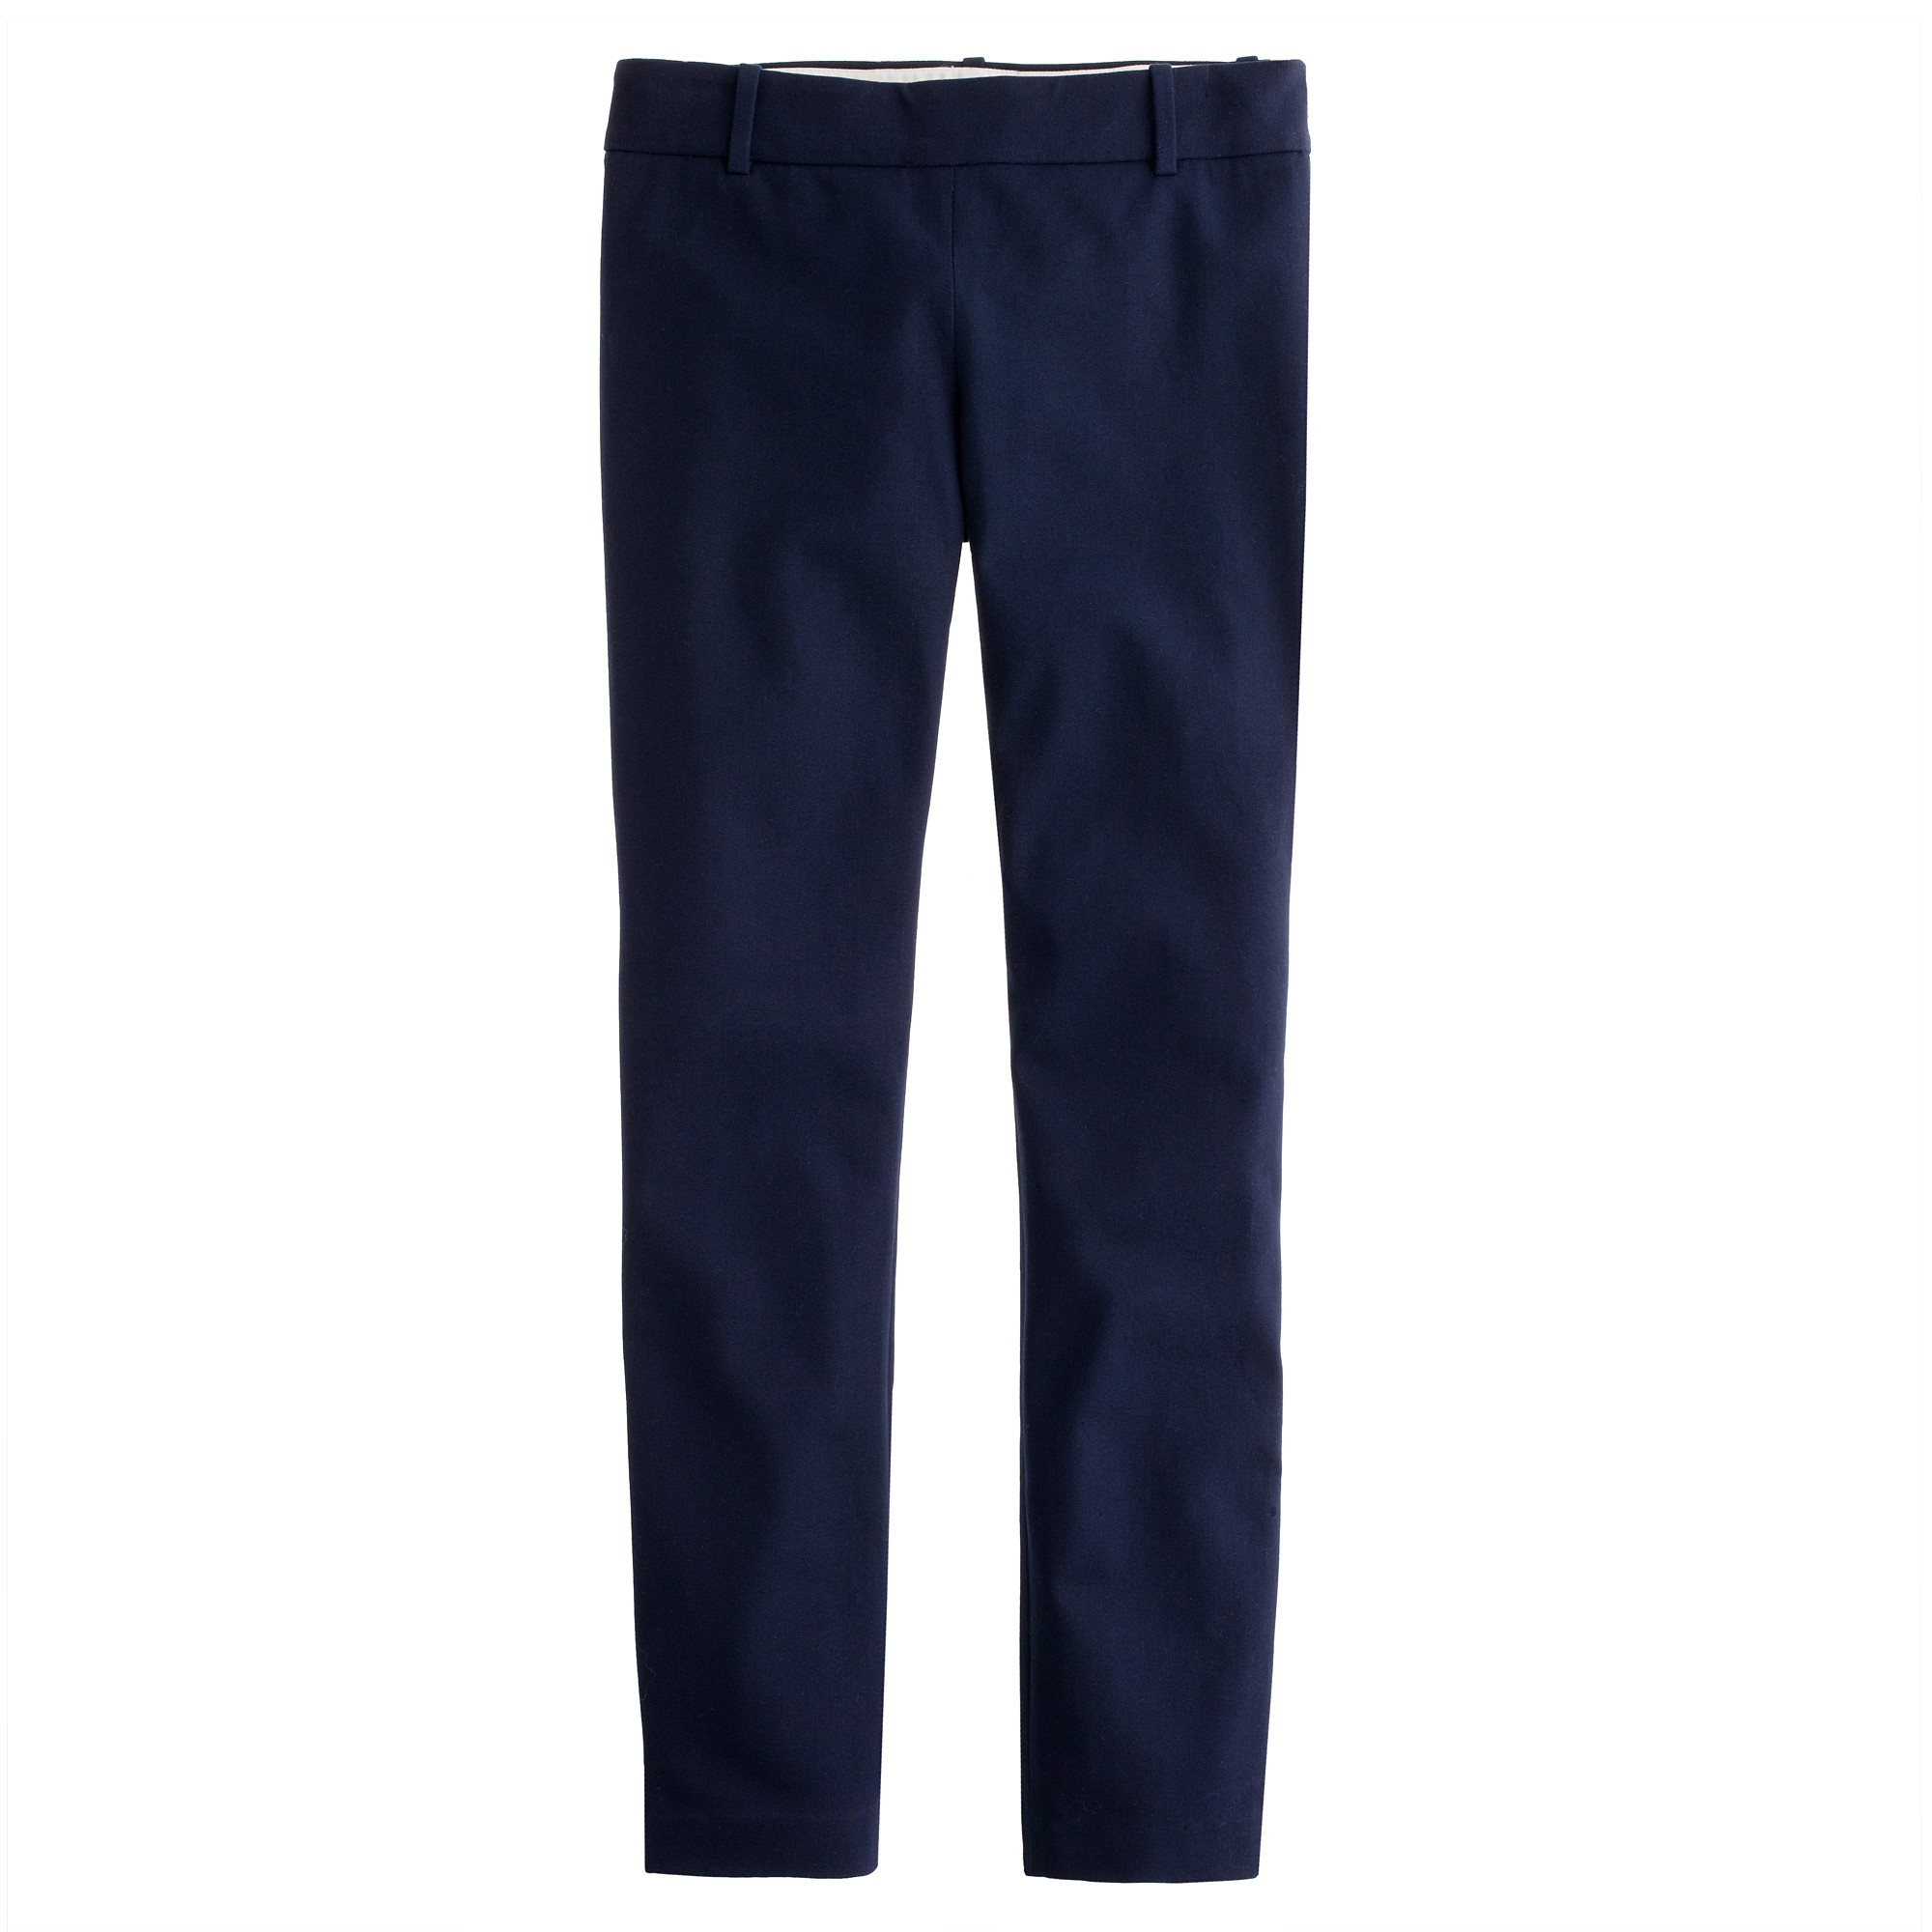 Popular PT89NV Women39s Navy Industrial Cargo Pant